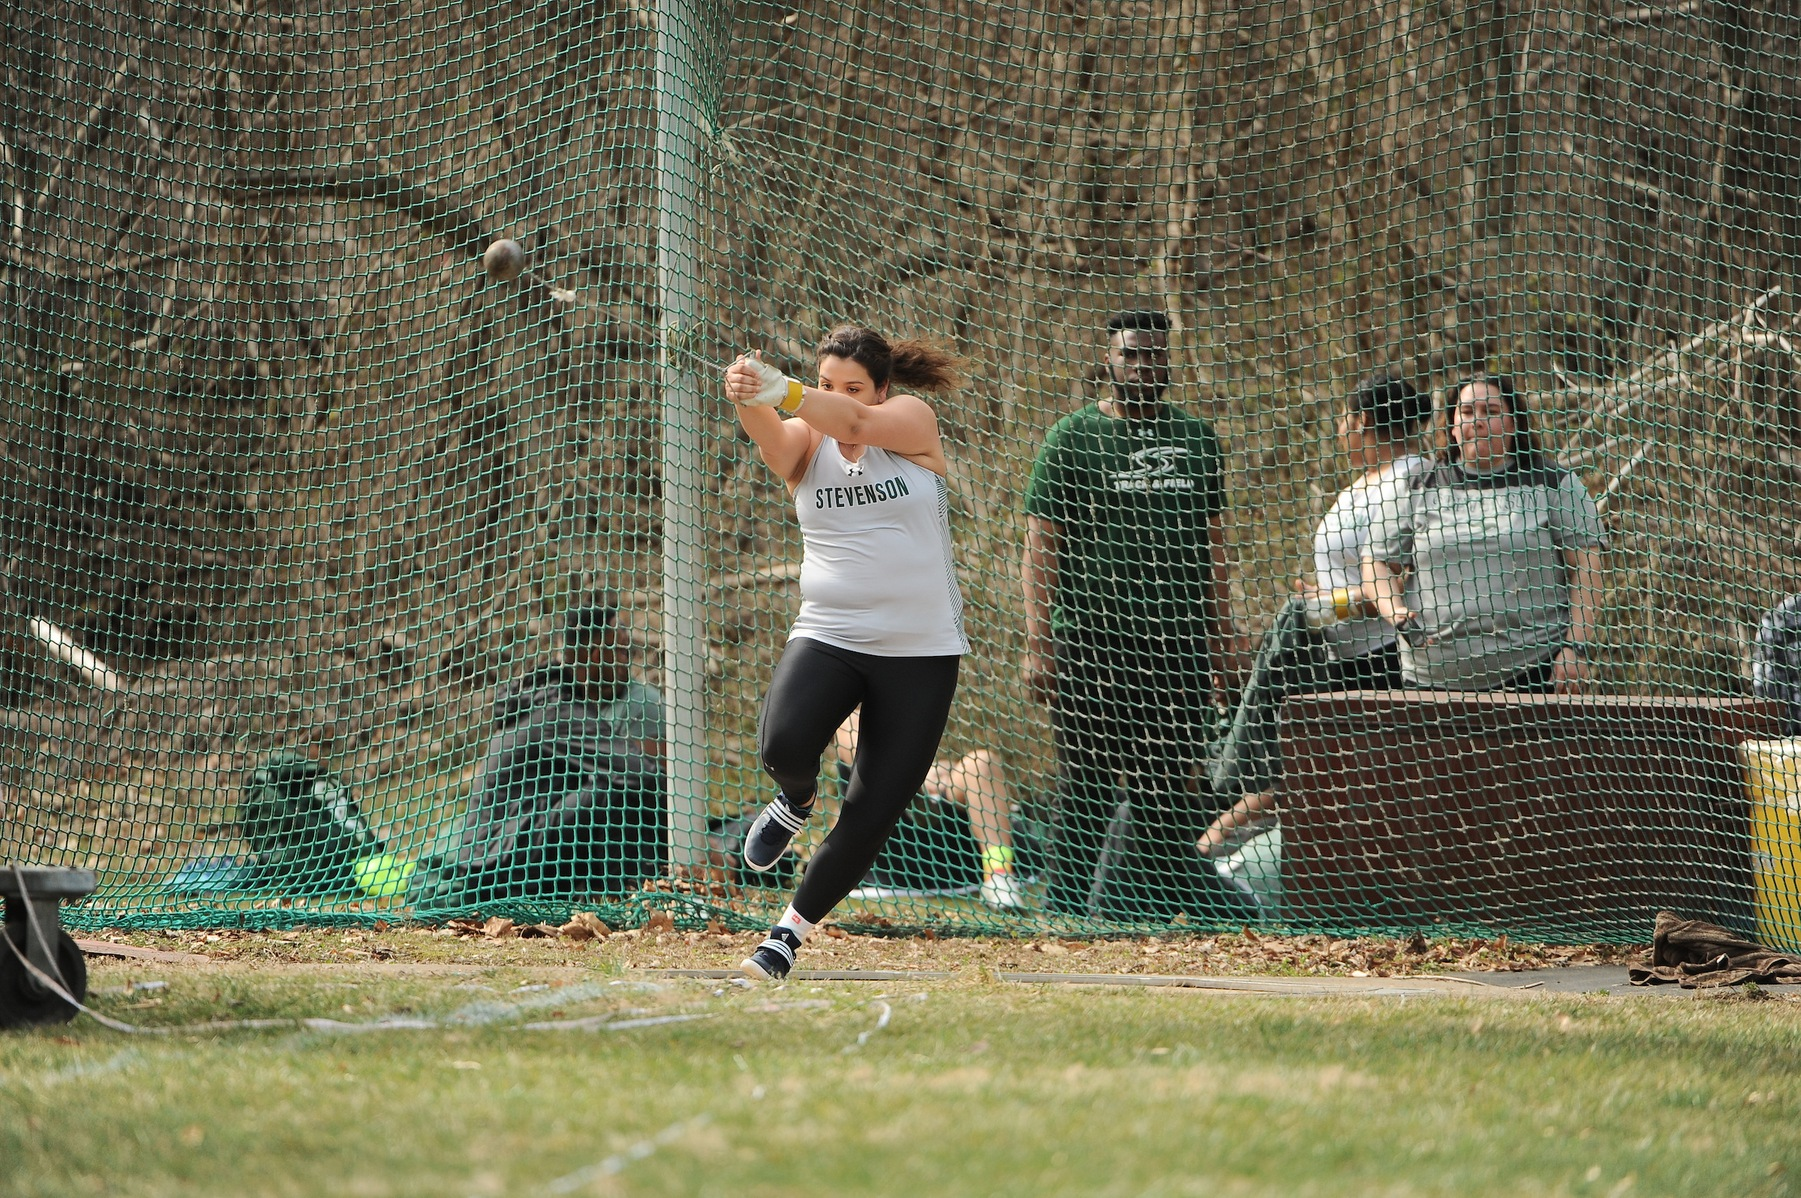 Dioses, Bishop Qualify for ECAC's in Hammer at Dan Curran Invite